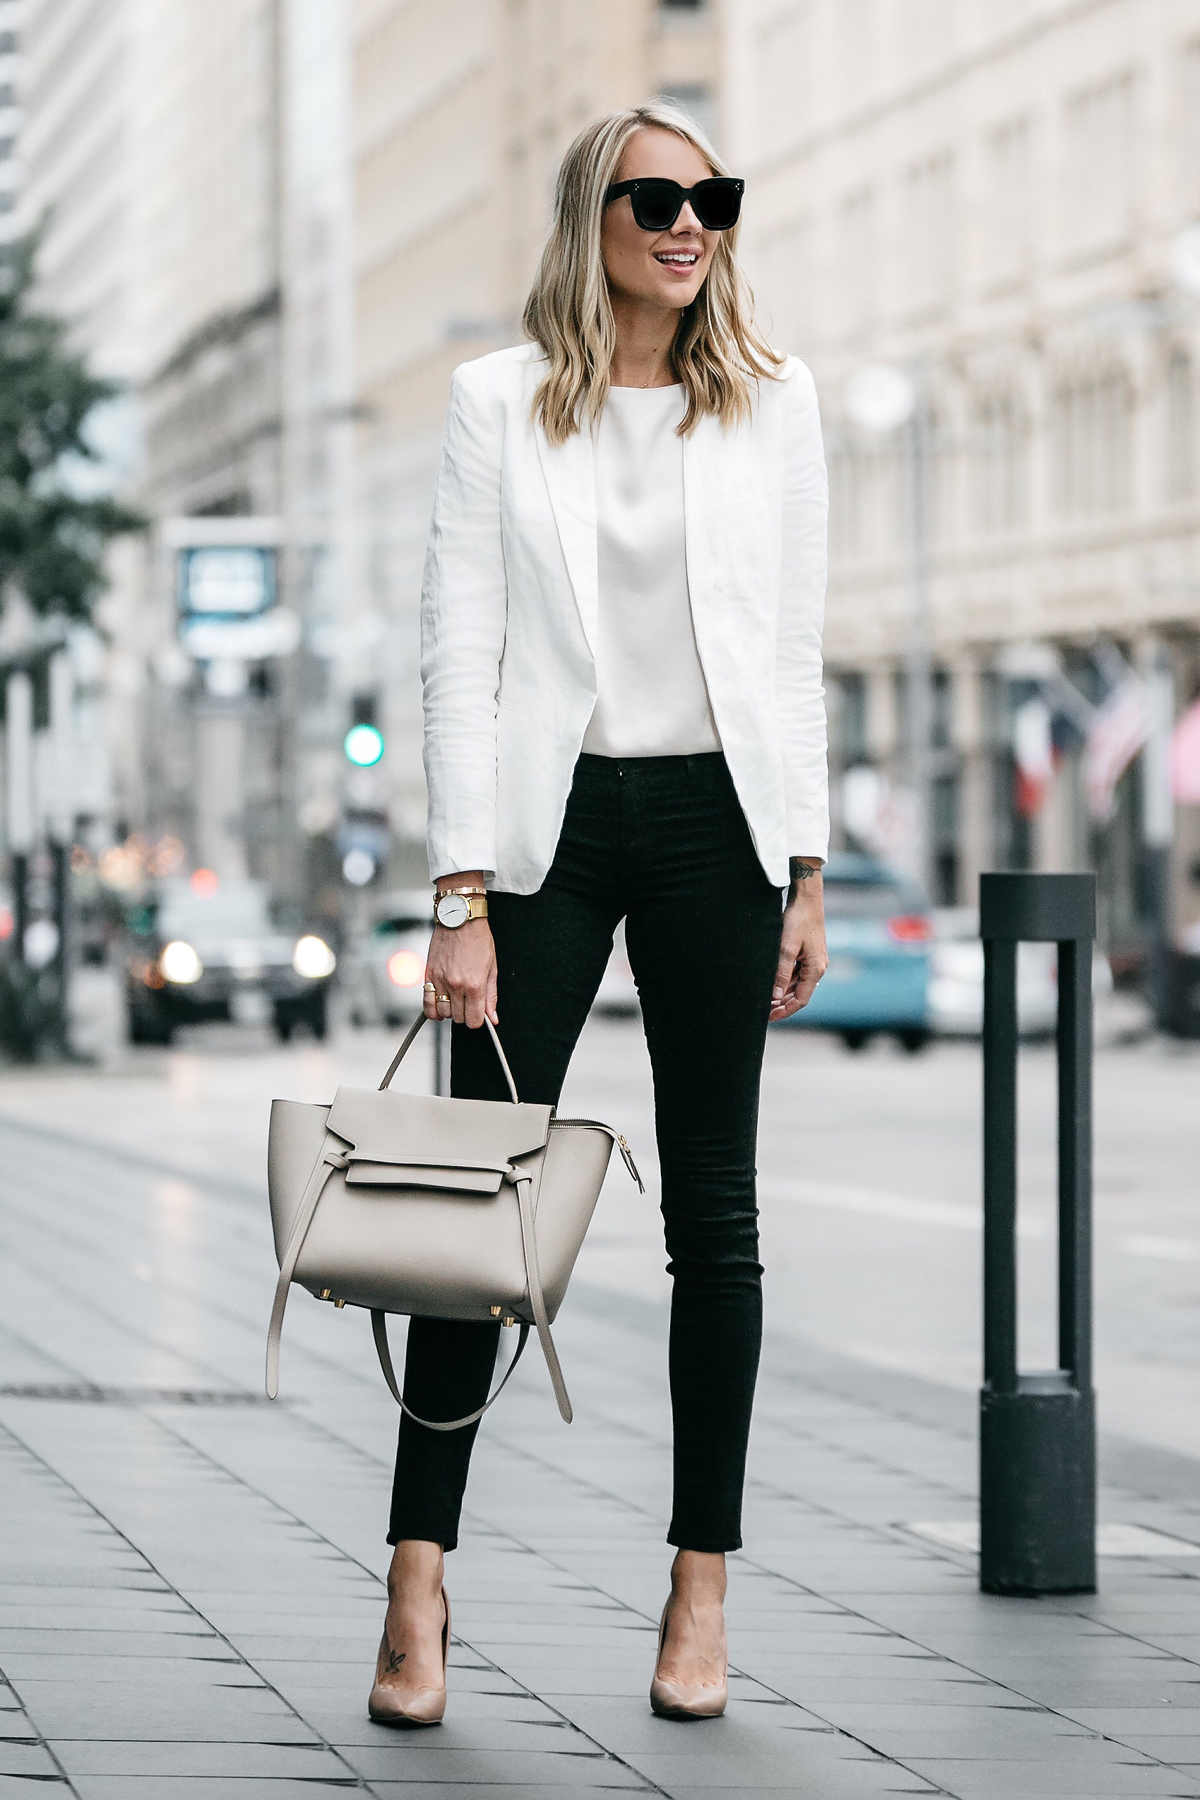 Blonde Woman Wearing Stitch Fix Outfit Joie White Blazer J Brand Black Skinny Jeans Nude Pumps Celine Belt Handbag Fashion Jackson Dallas Blogger Fashion Blogger Street Style